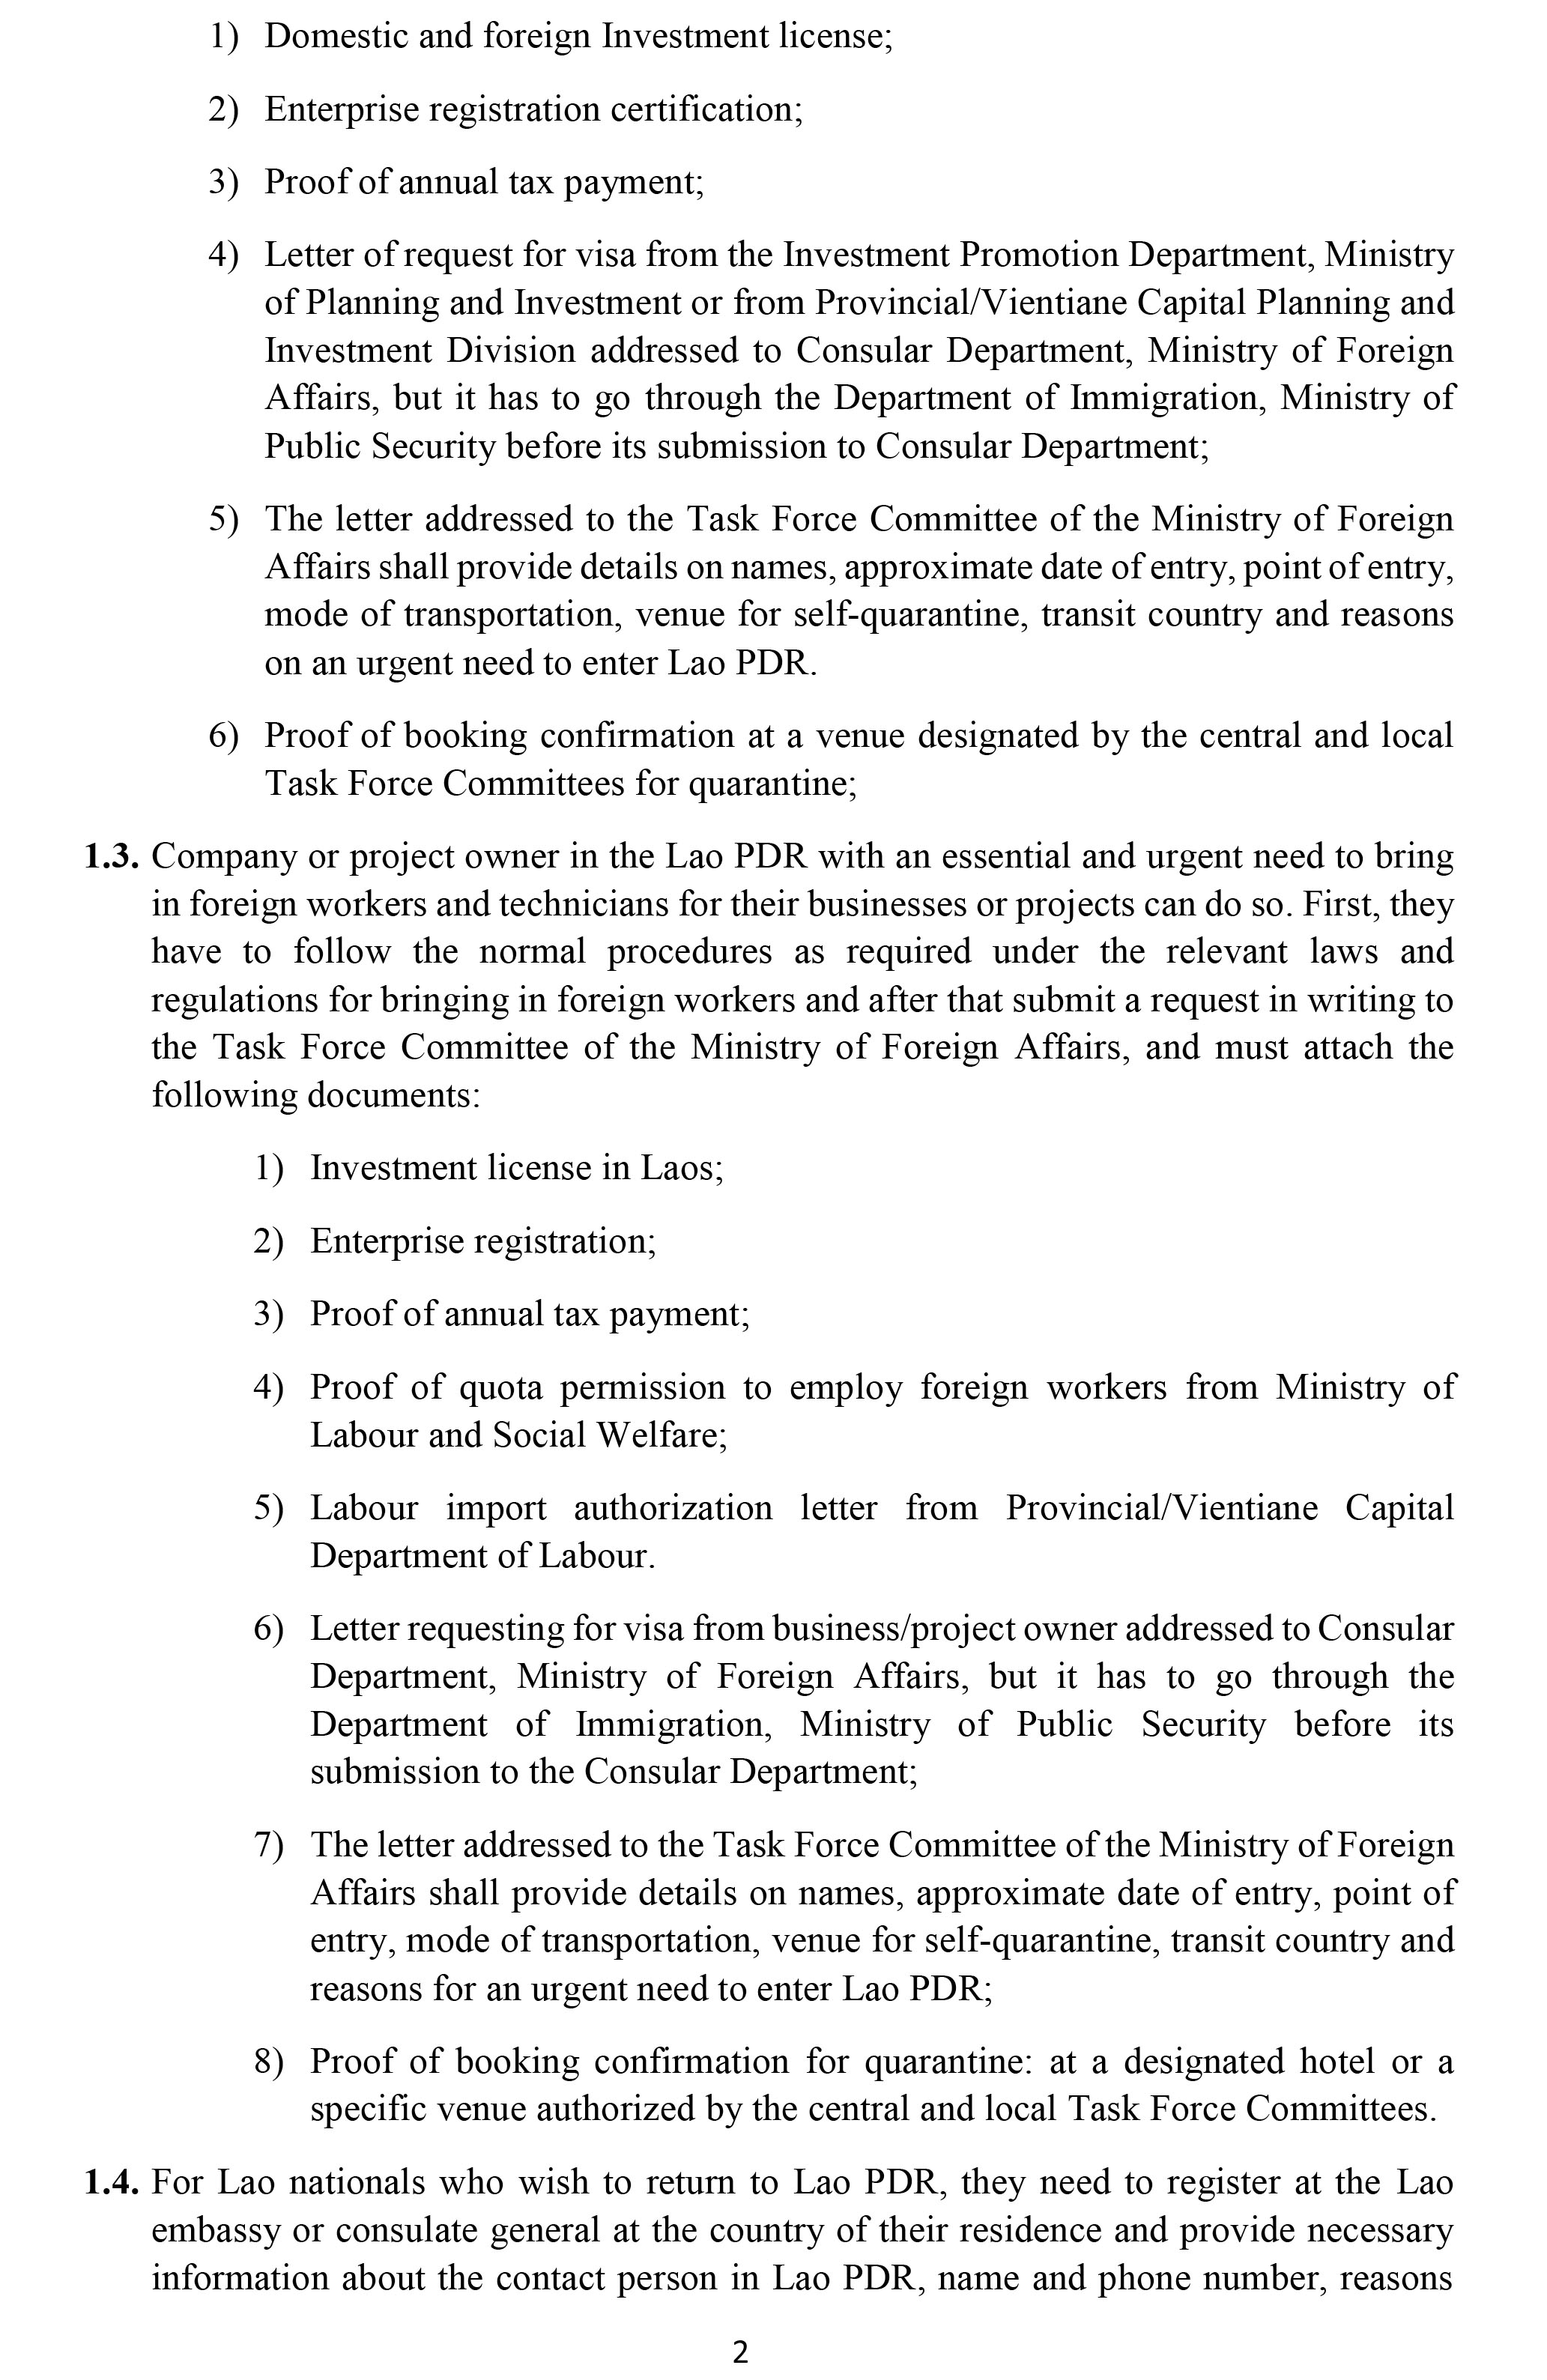 MOFA-Procedural Advisory on documentation and steps 1861-2